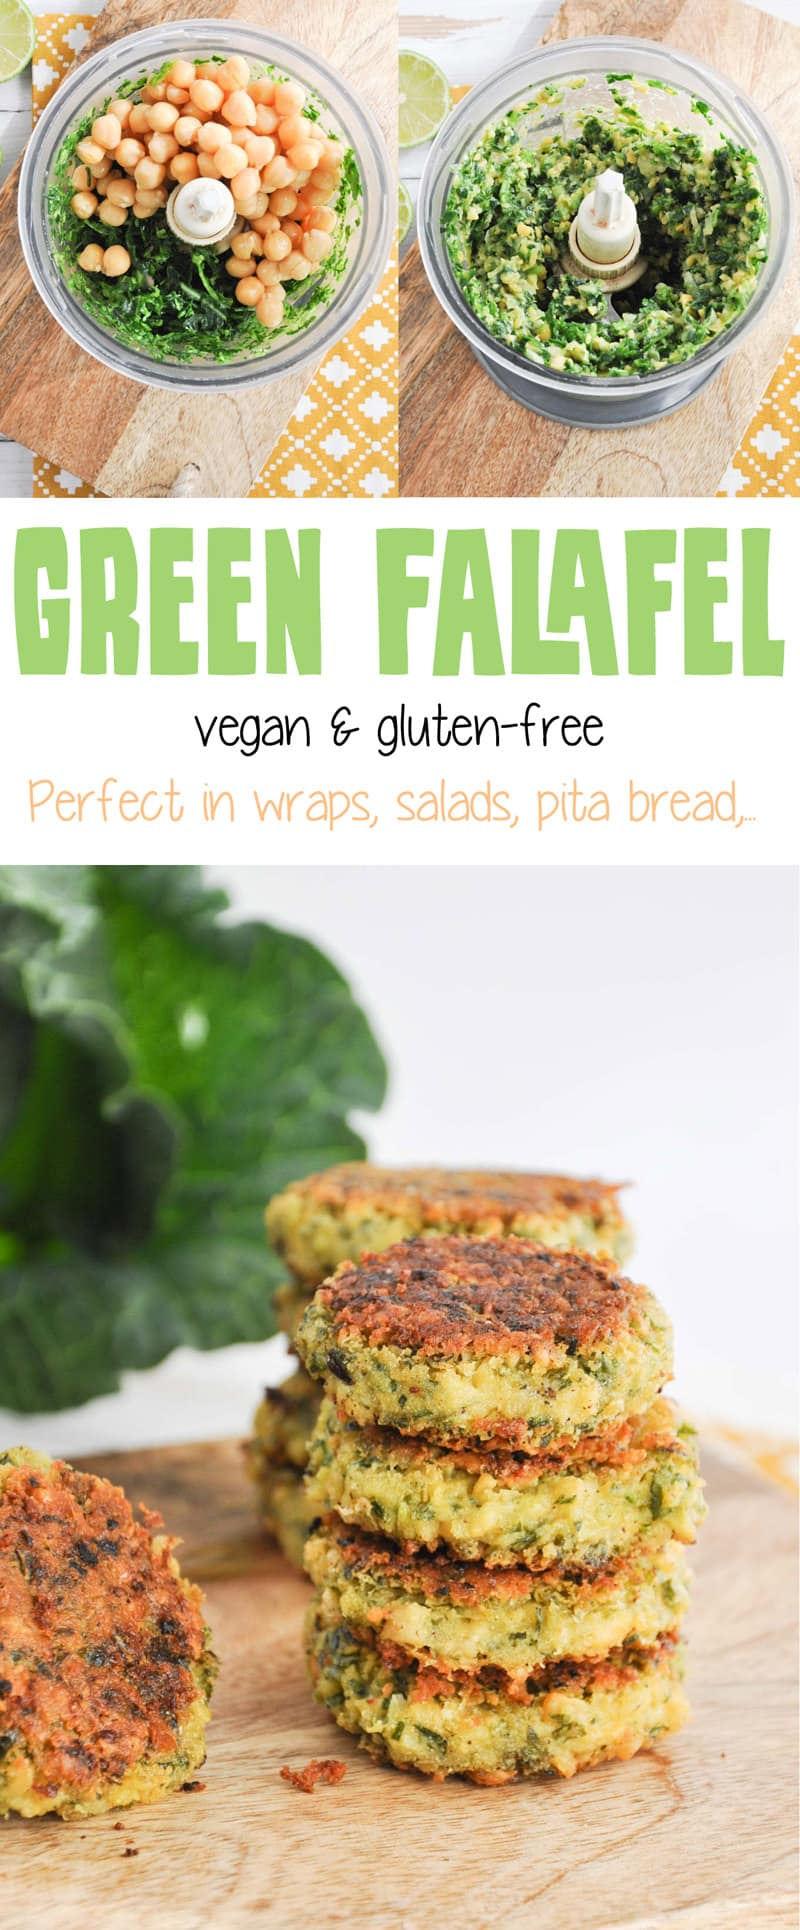 Vegan and gluten-free Green Falafel made with canned chickpeas #vegan #glutenfree #falafel